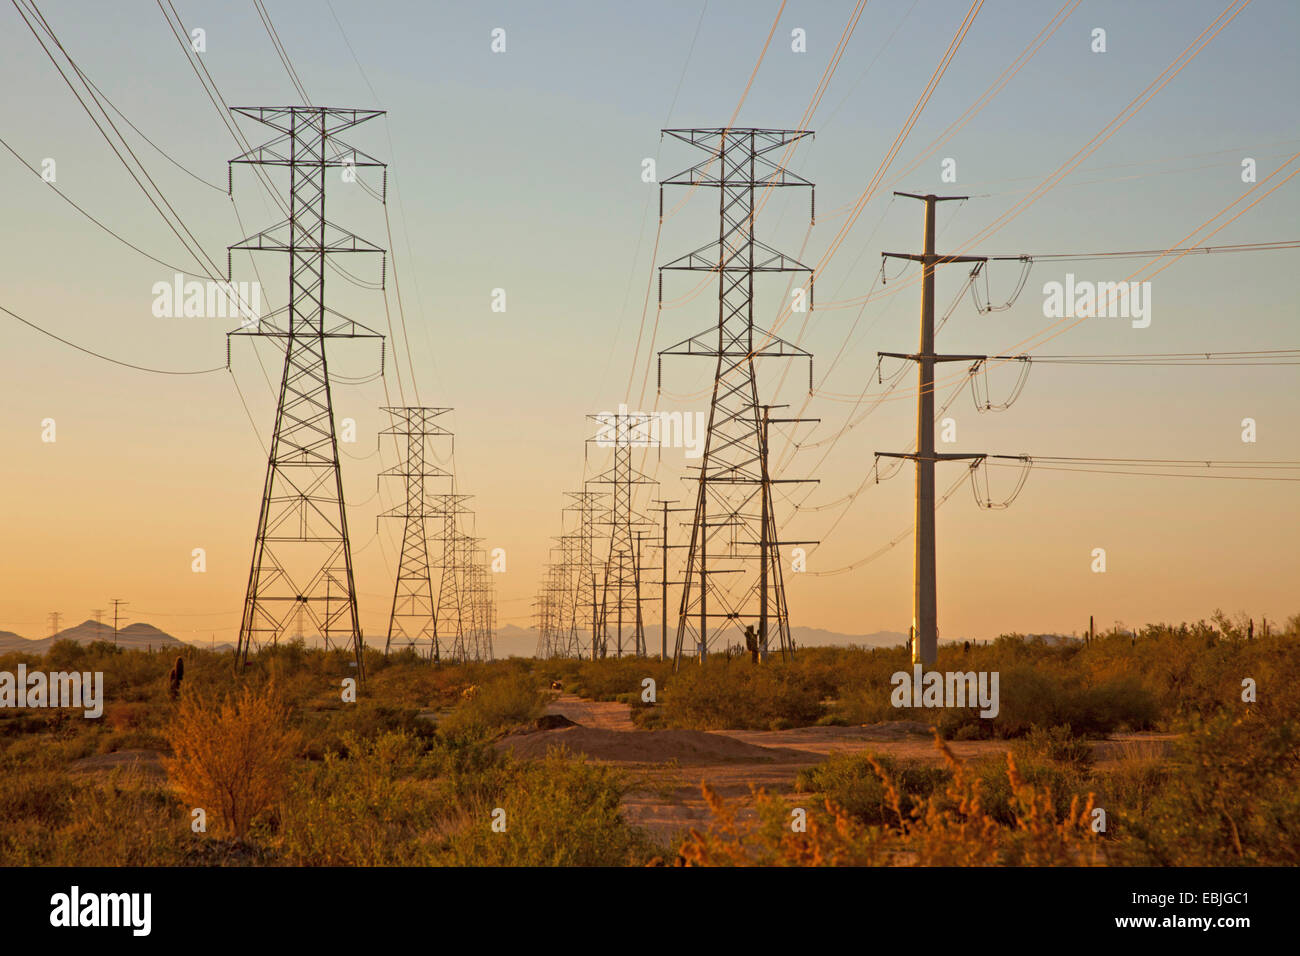 power poles and high-voltage lines in the desert, USA, Arizona, Sonoran - Stock Image